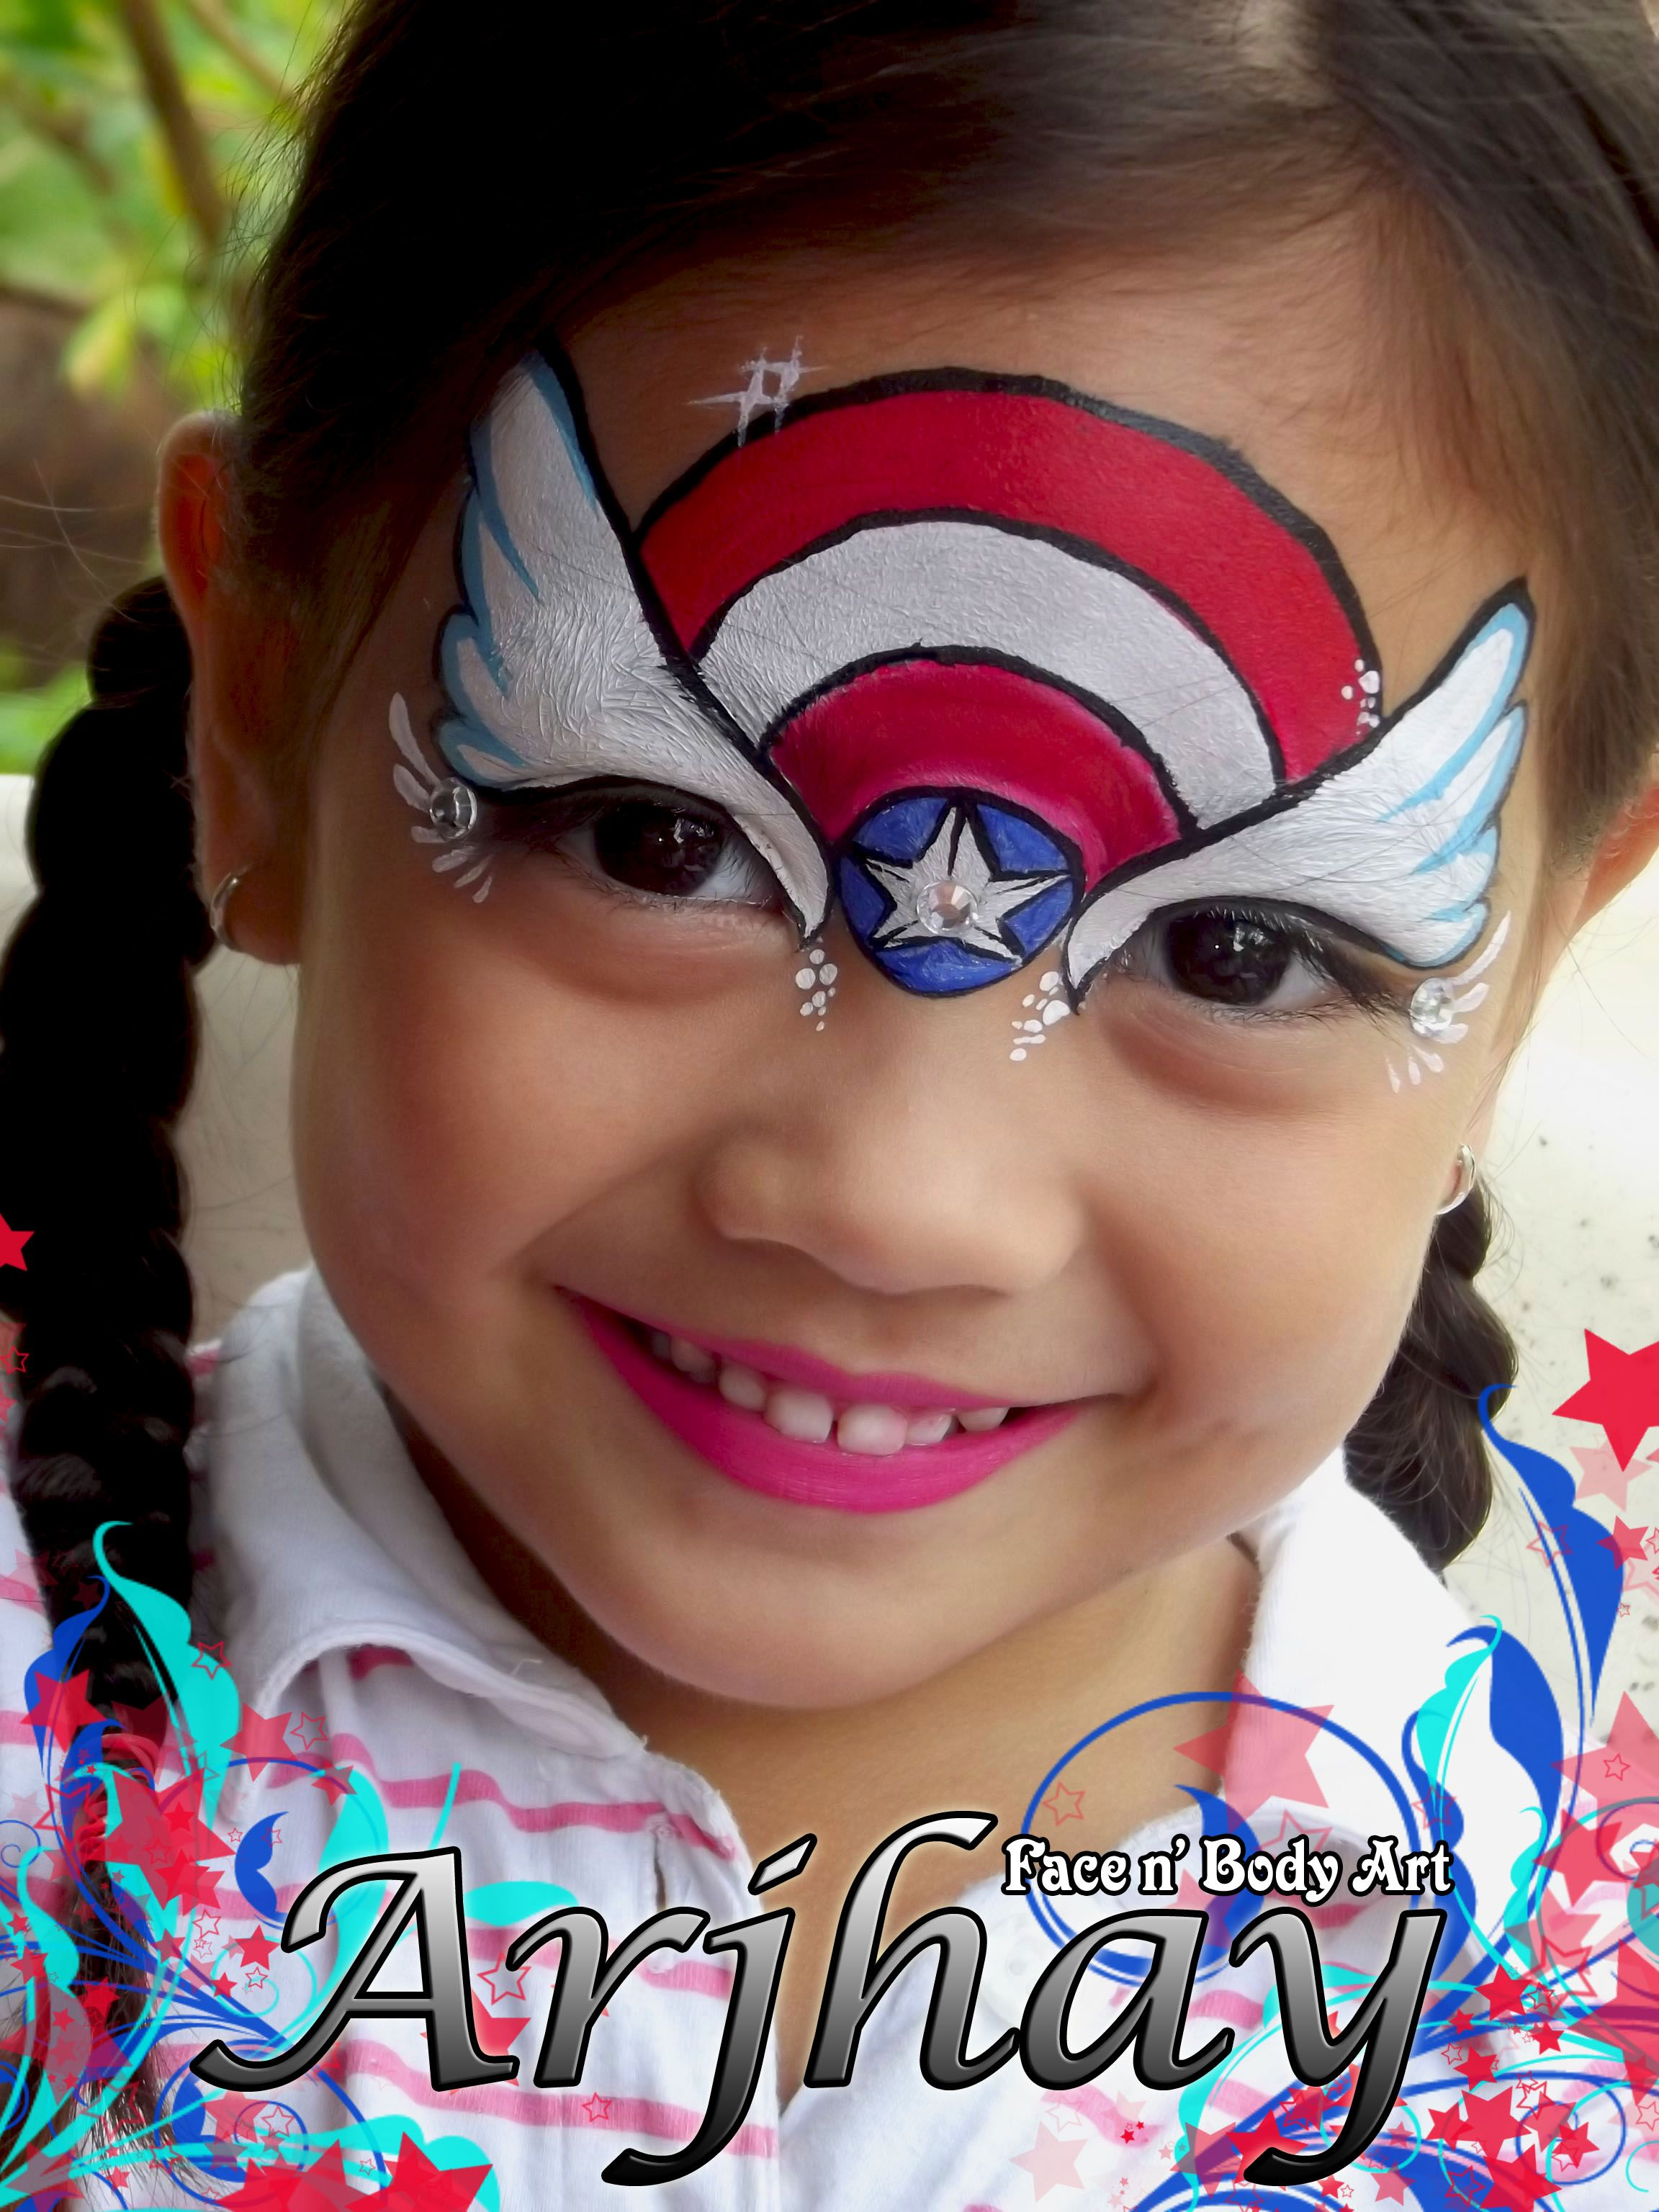 Face painting inspired by captain america pretty girls for Pretty designs to paint